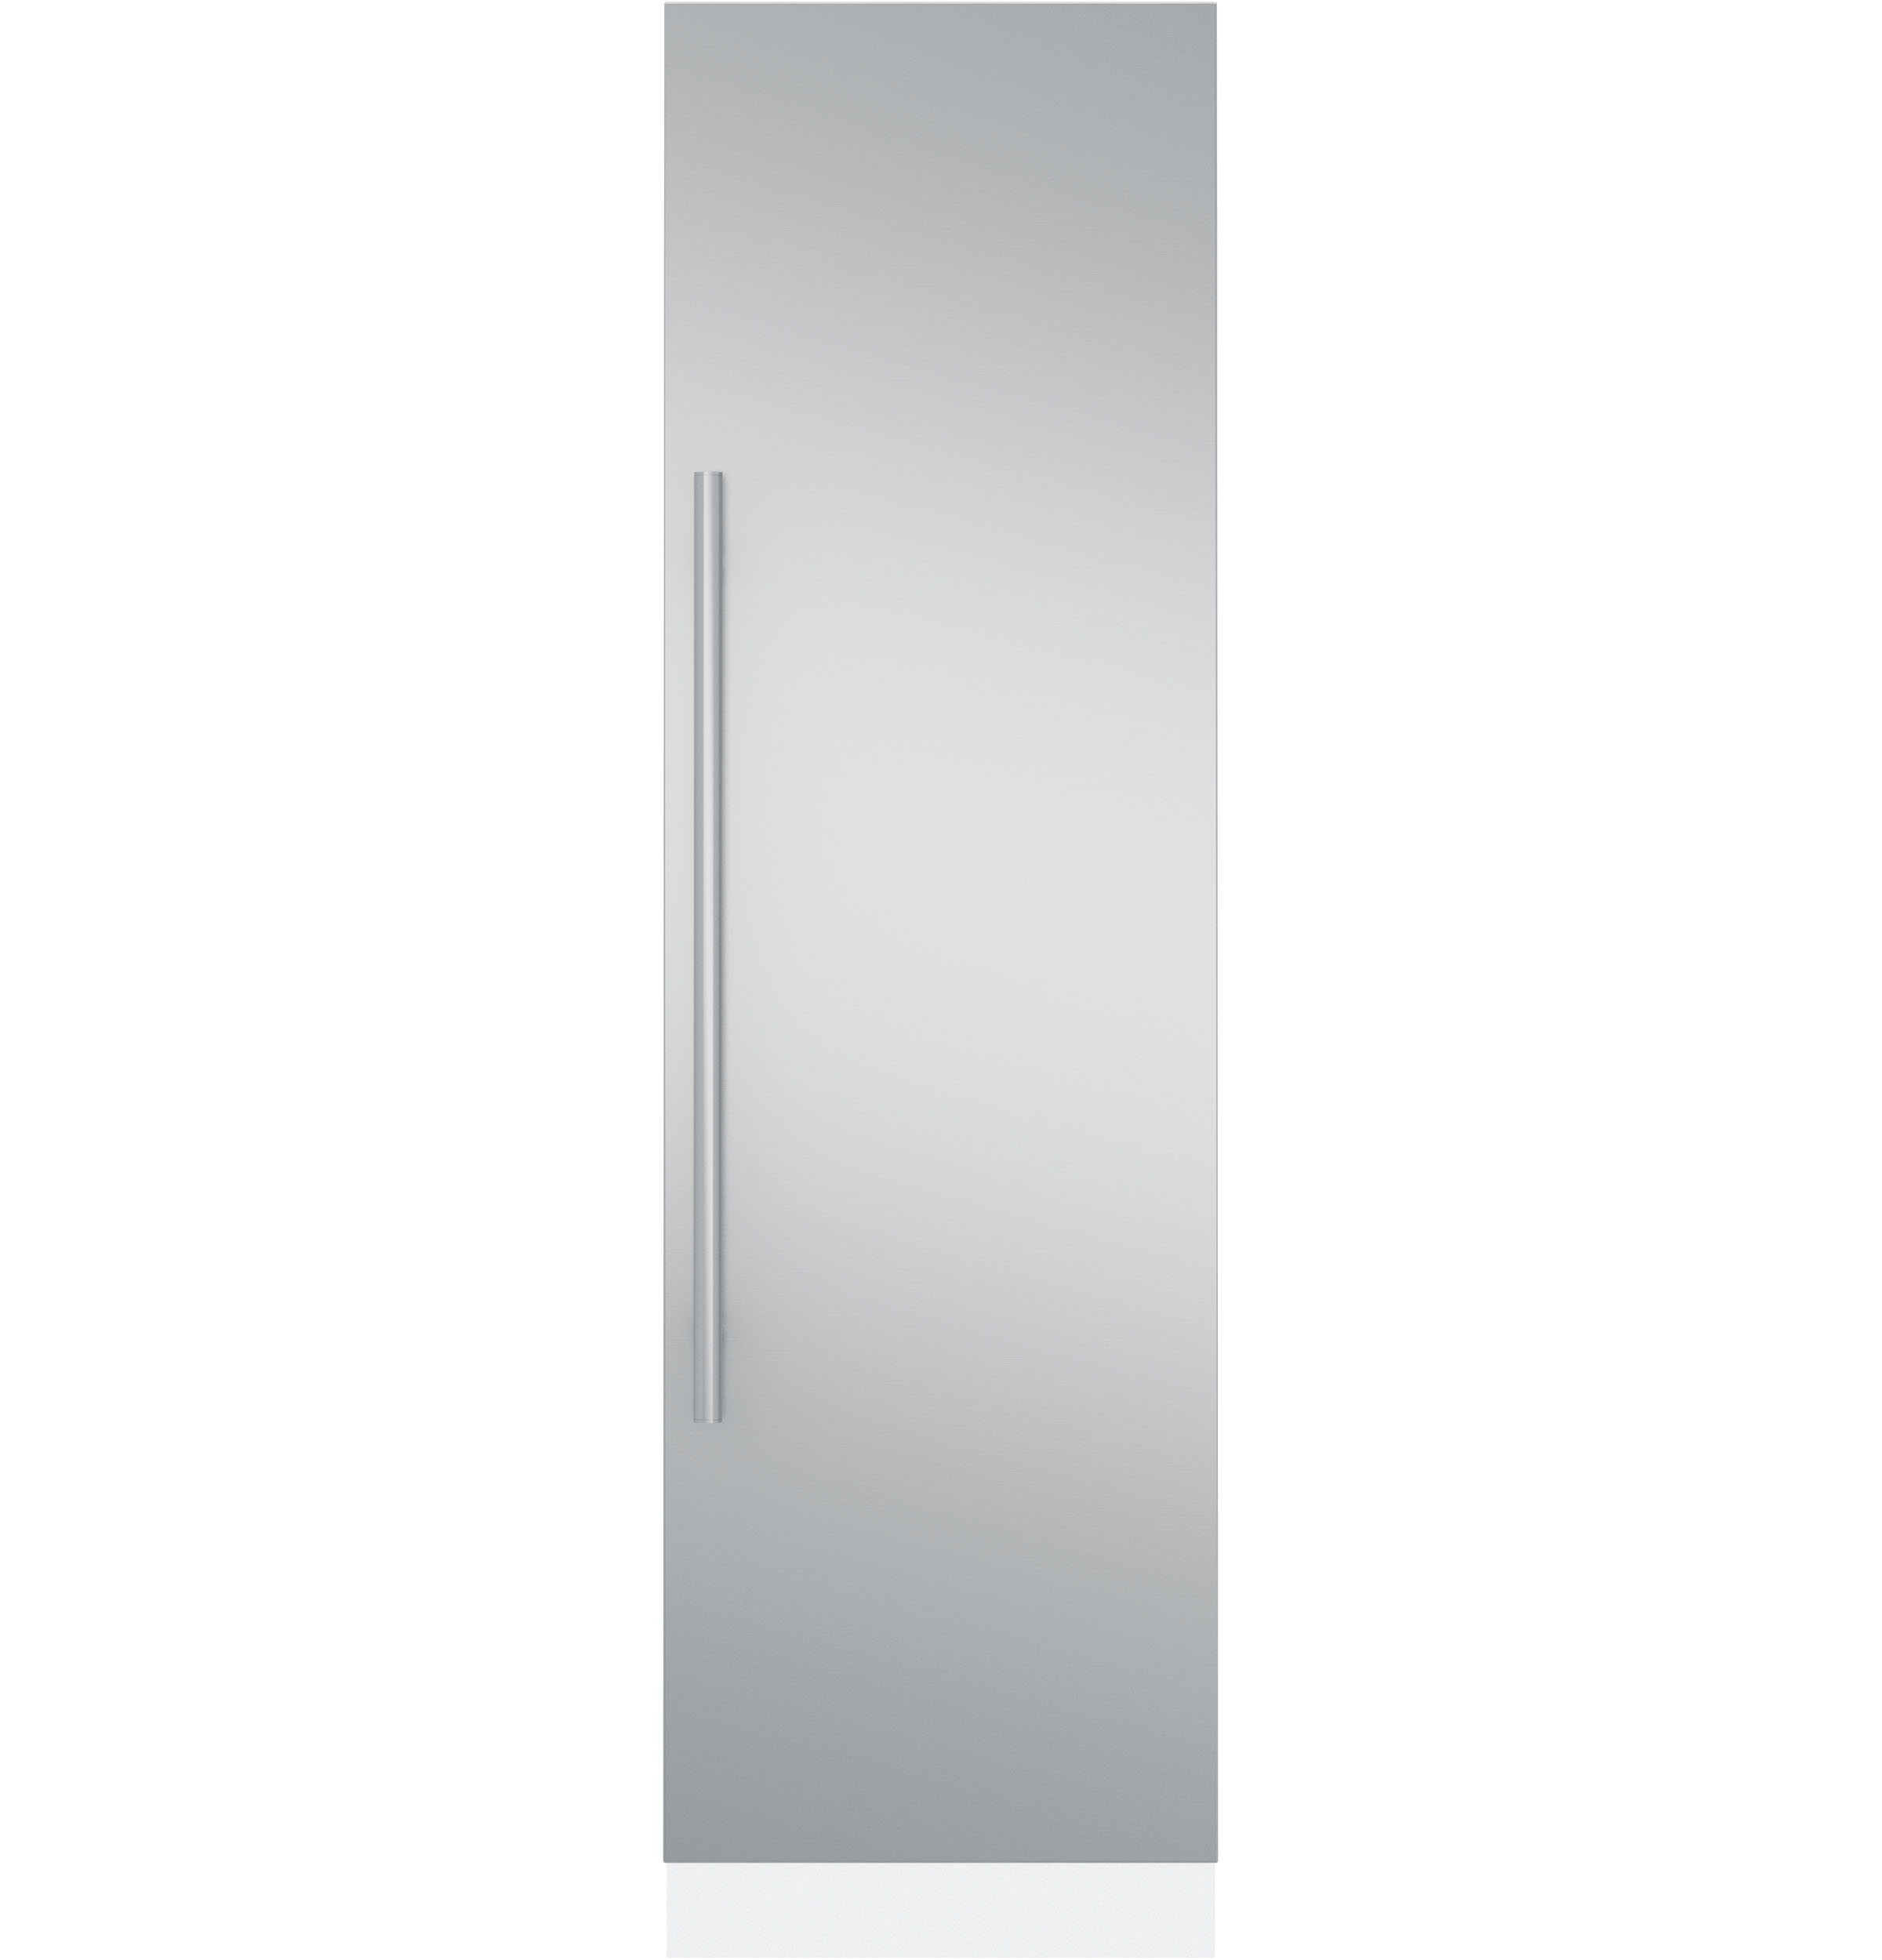 "Monogram 24"" Fully Integrated Refrigerator or Freezer- Euro Stainless Steel Door Panel Kit"